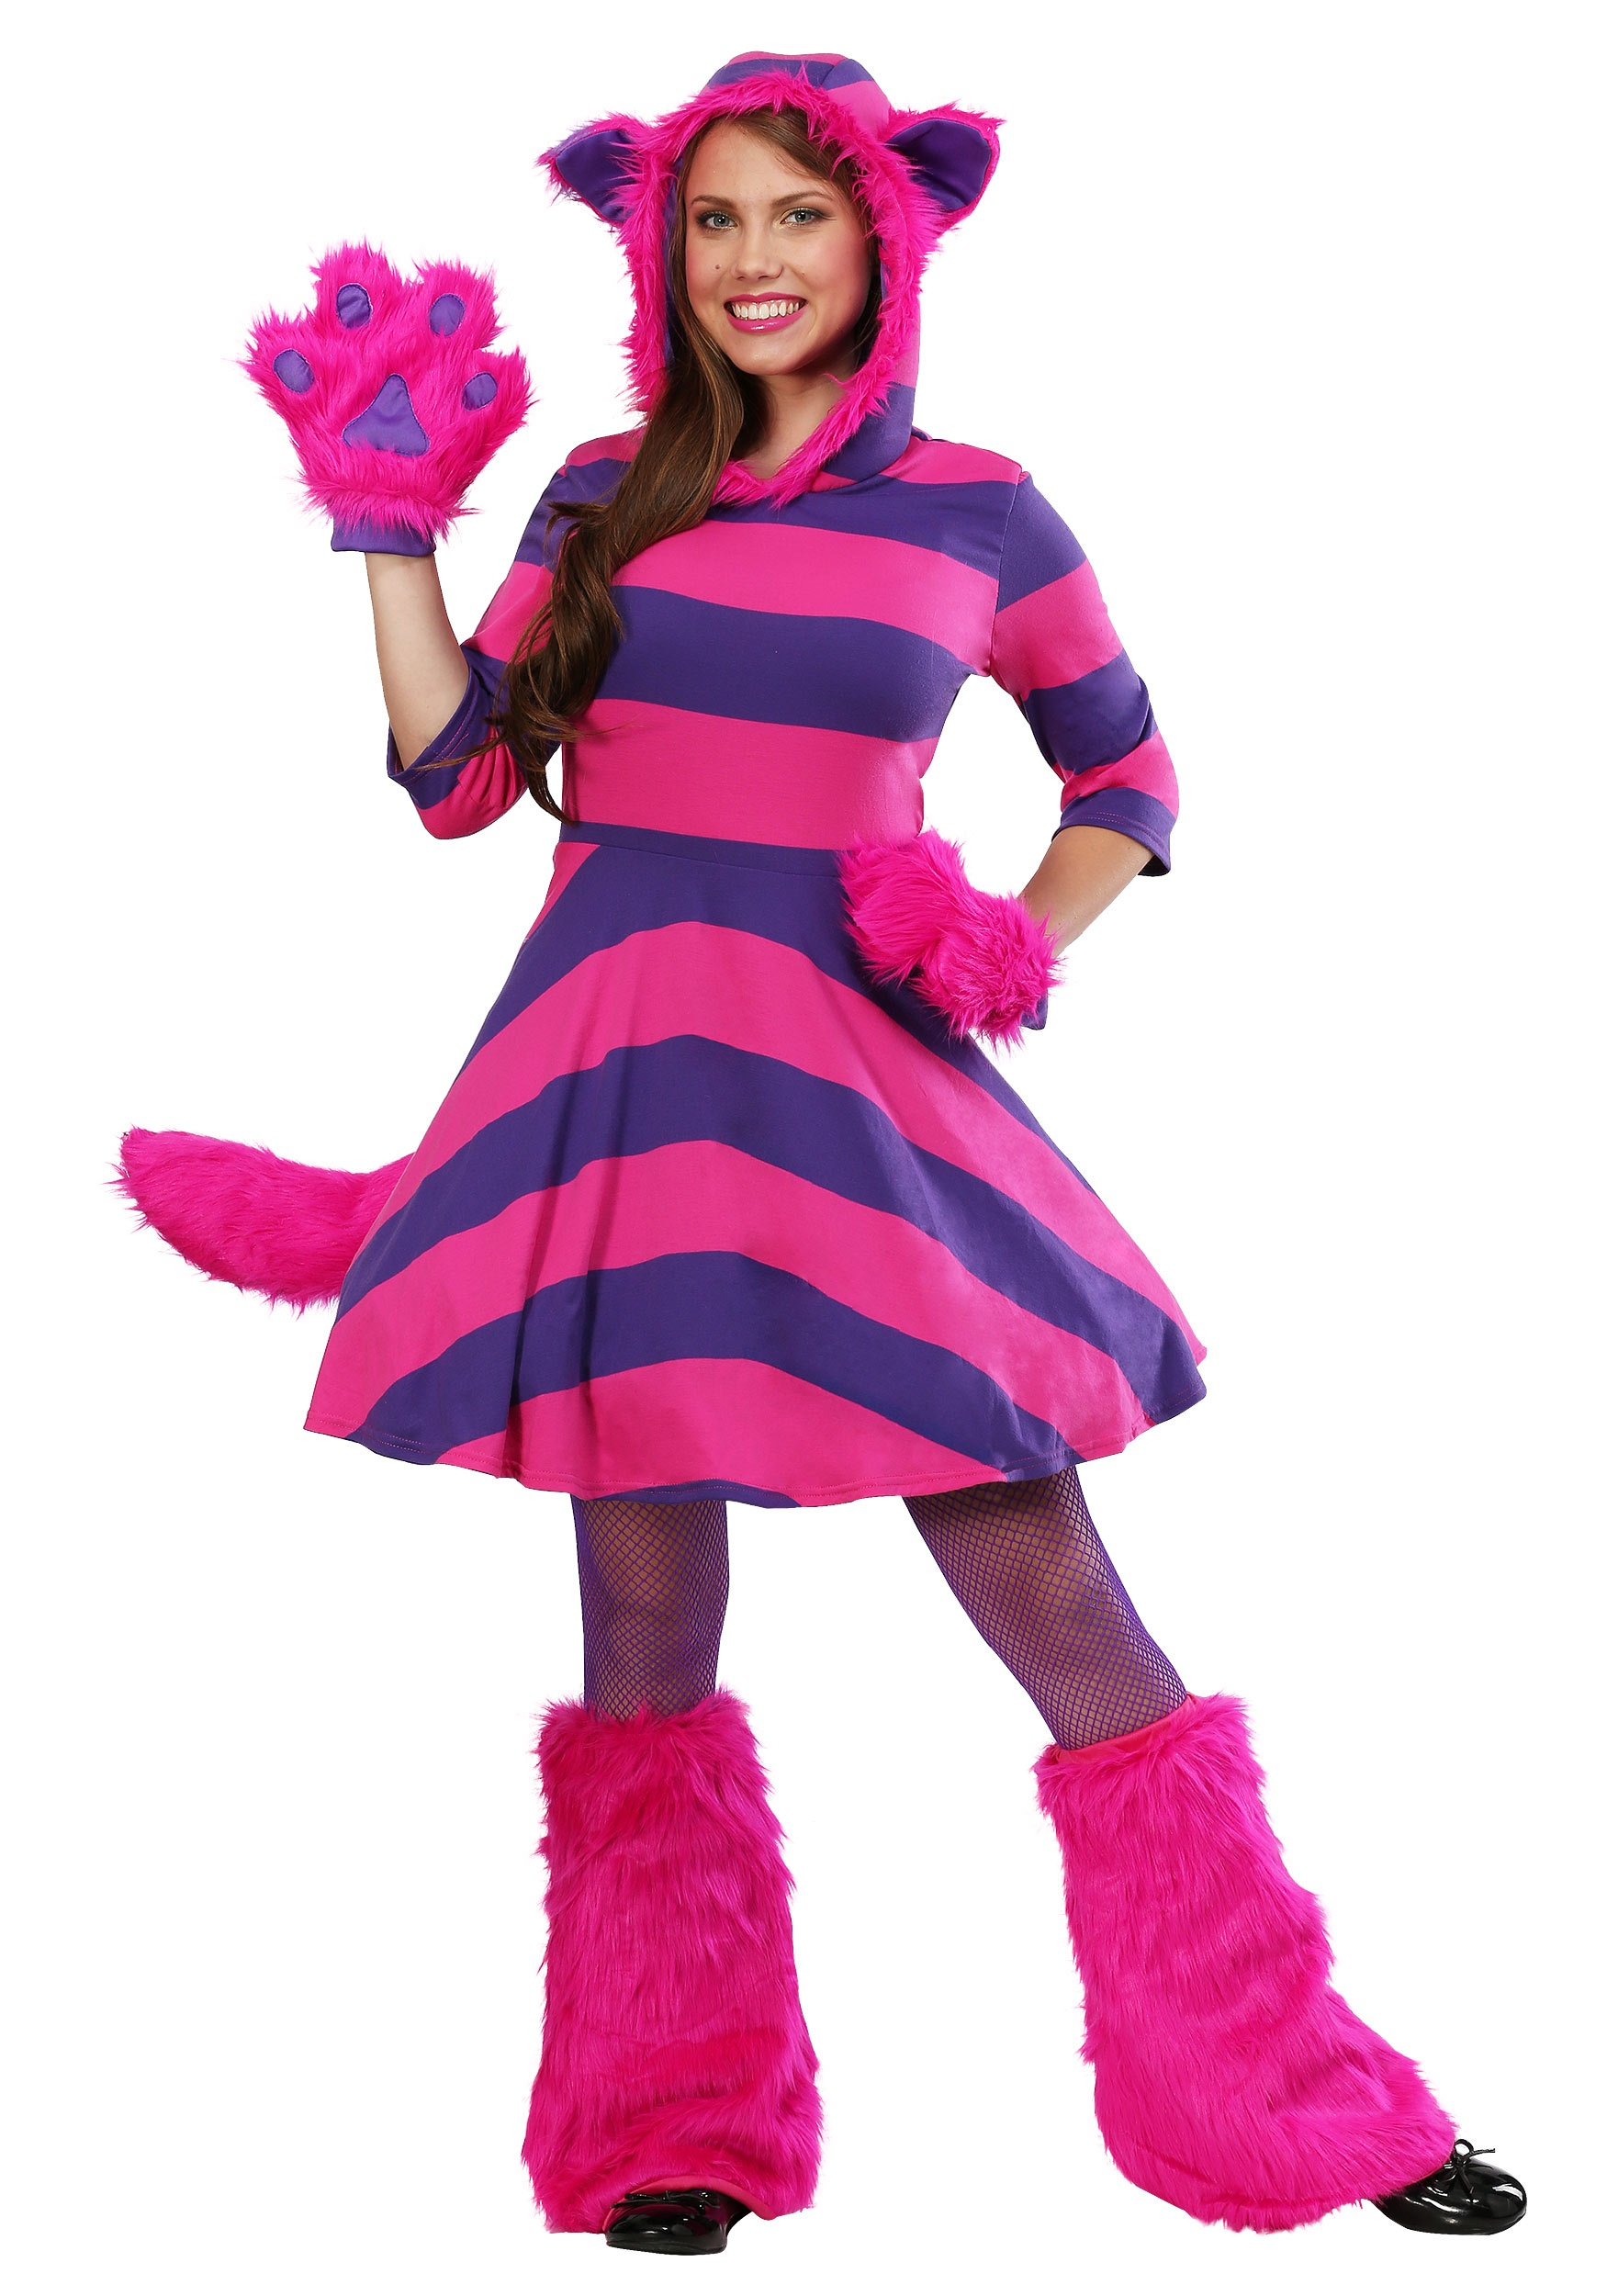 Cheshire Cat Costume for Women 7b098cb864